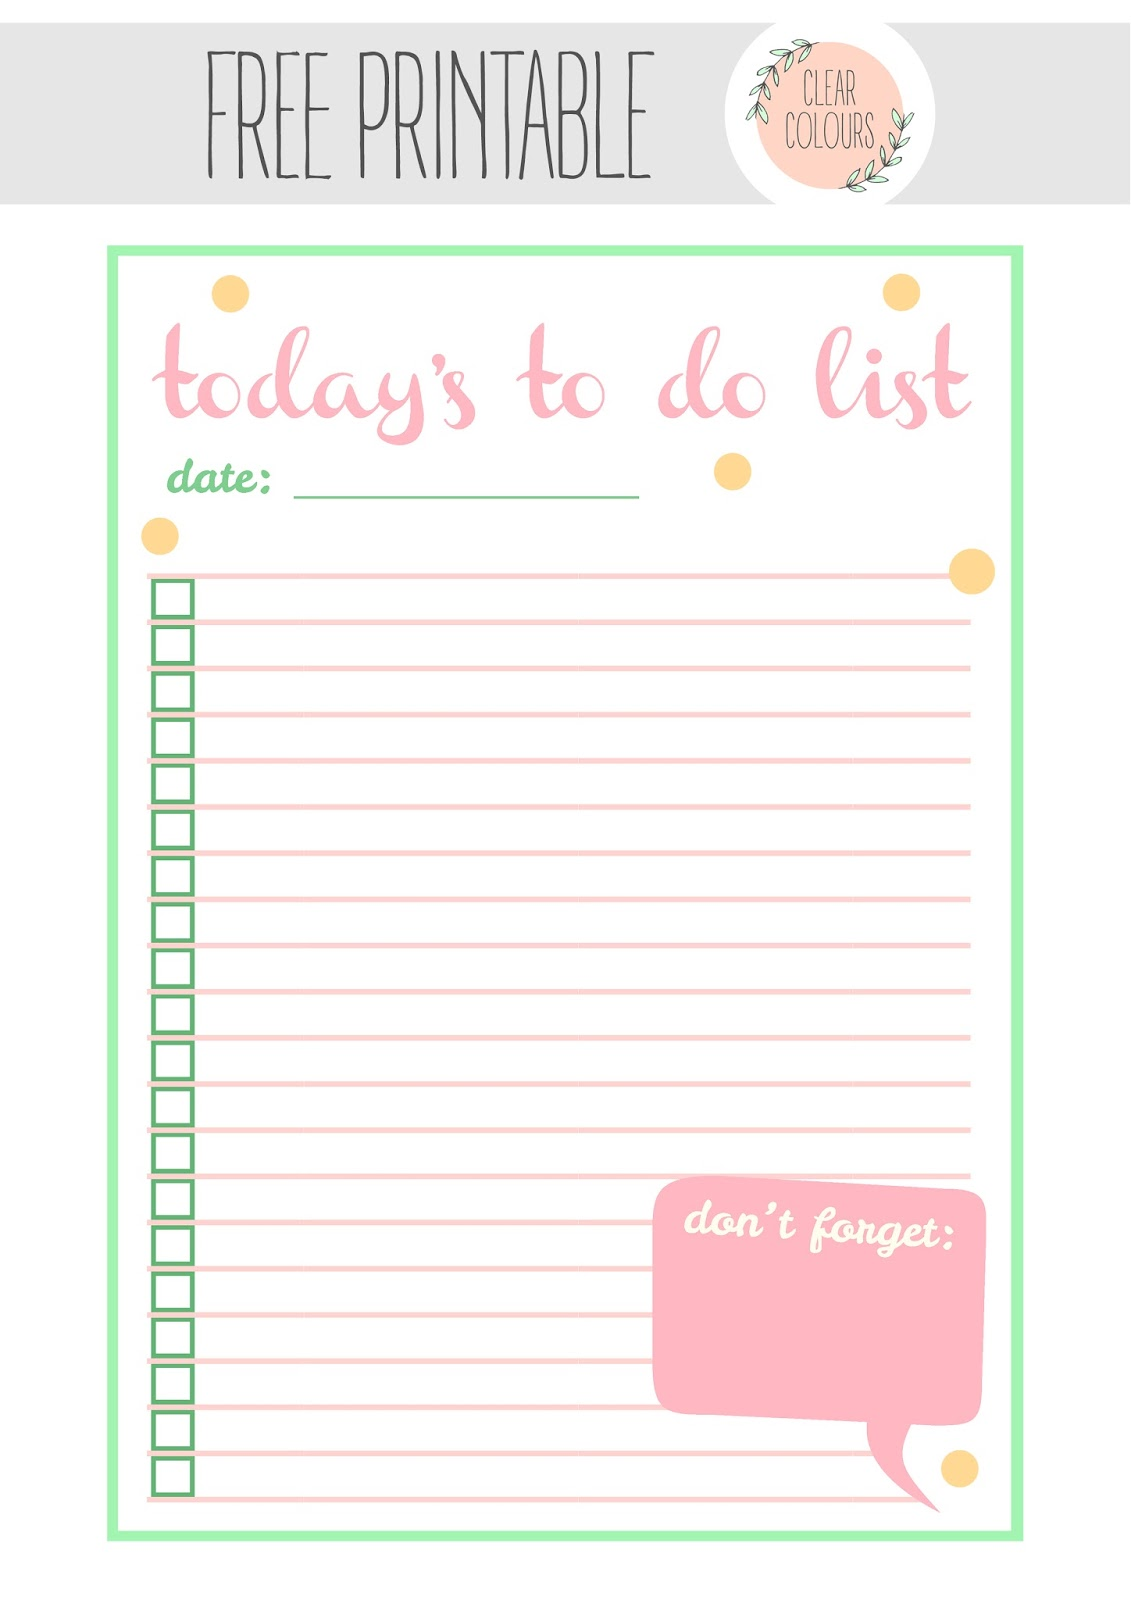 Clear Colours Free Printables To Do List